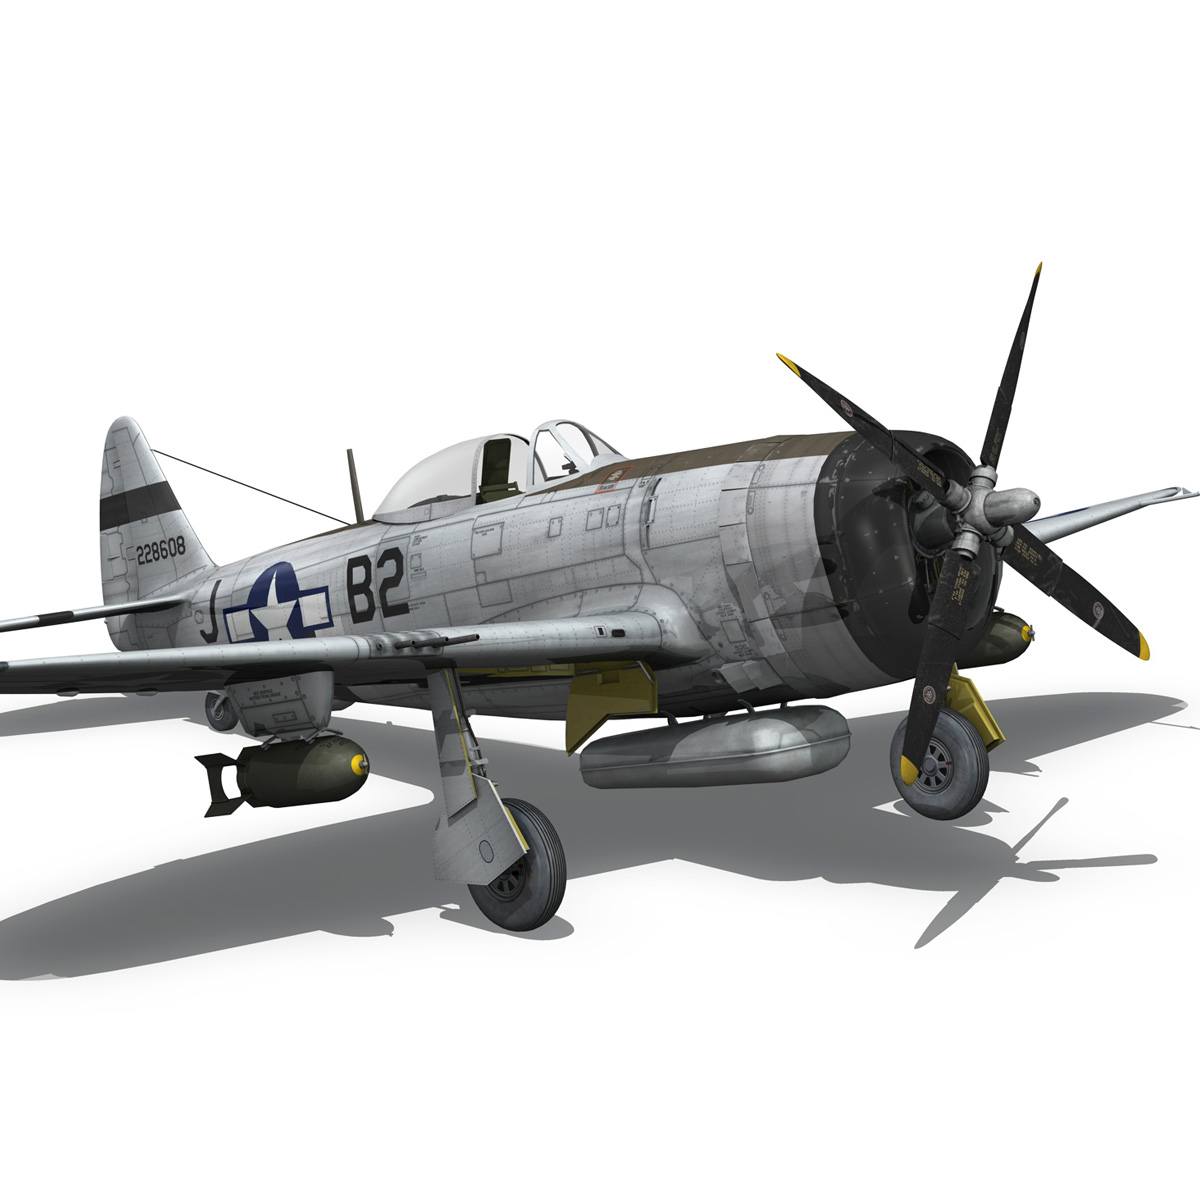 Republic P-47D Thunderbolt - Virginia 3d model  266782